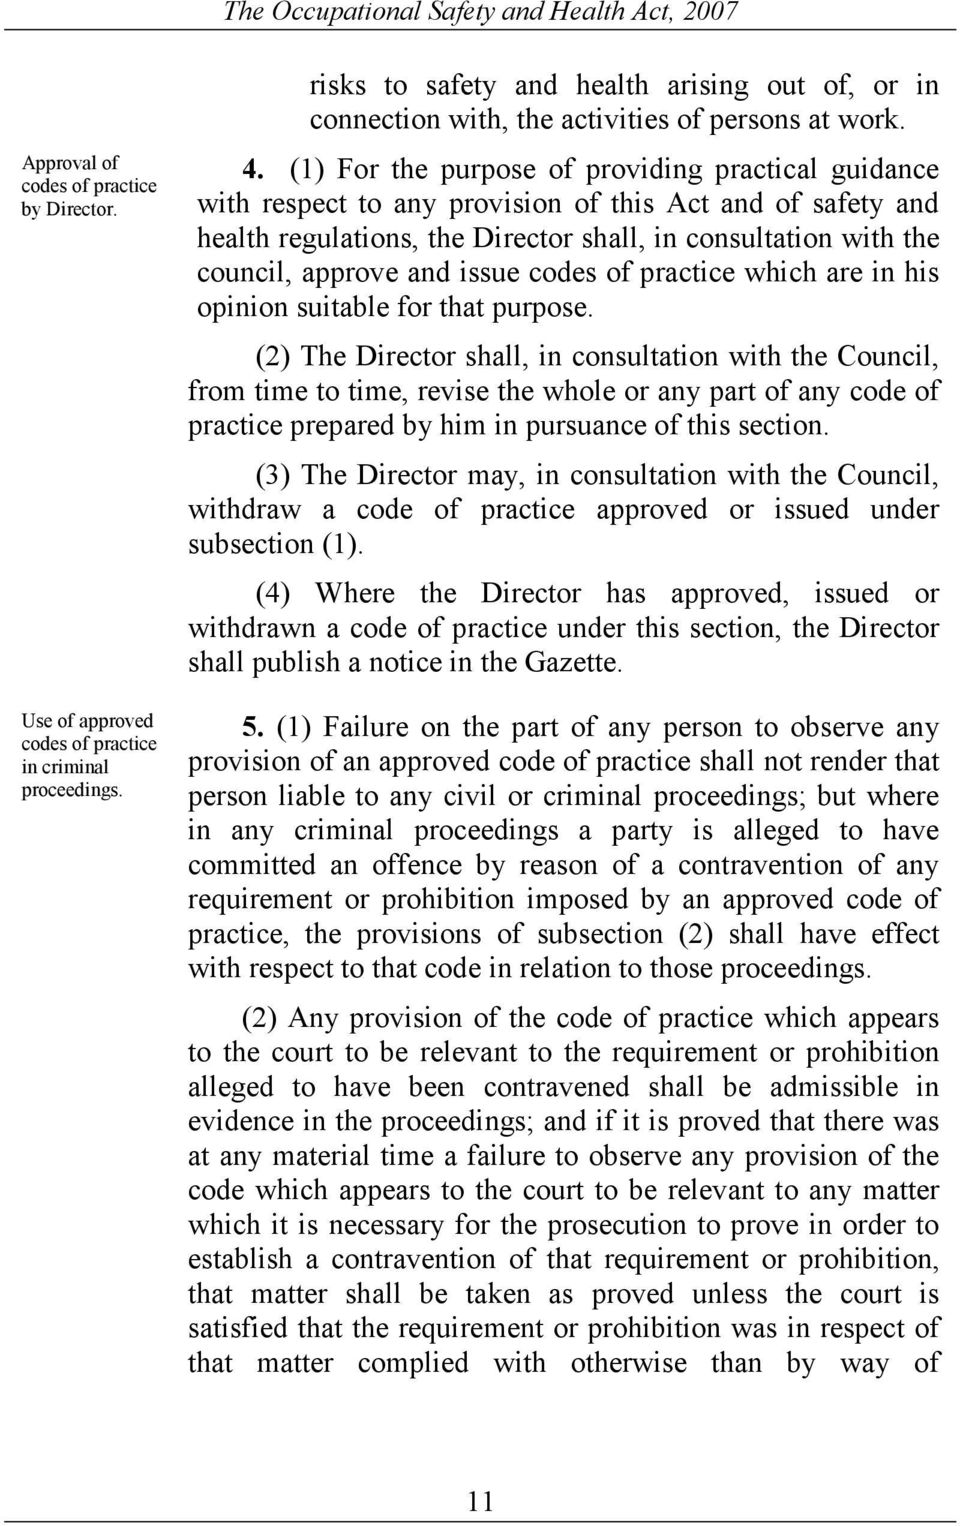 (1) For the purpose of providing practical guidance with respect to any provision of this Act and of safety and health regulations, the Director shall, in consultation with the council, approve and